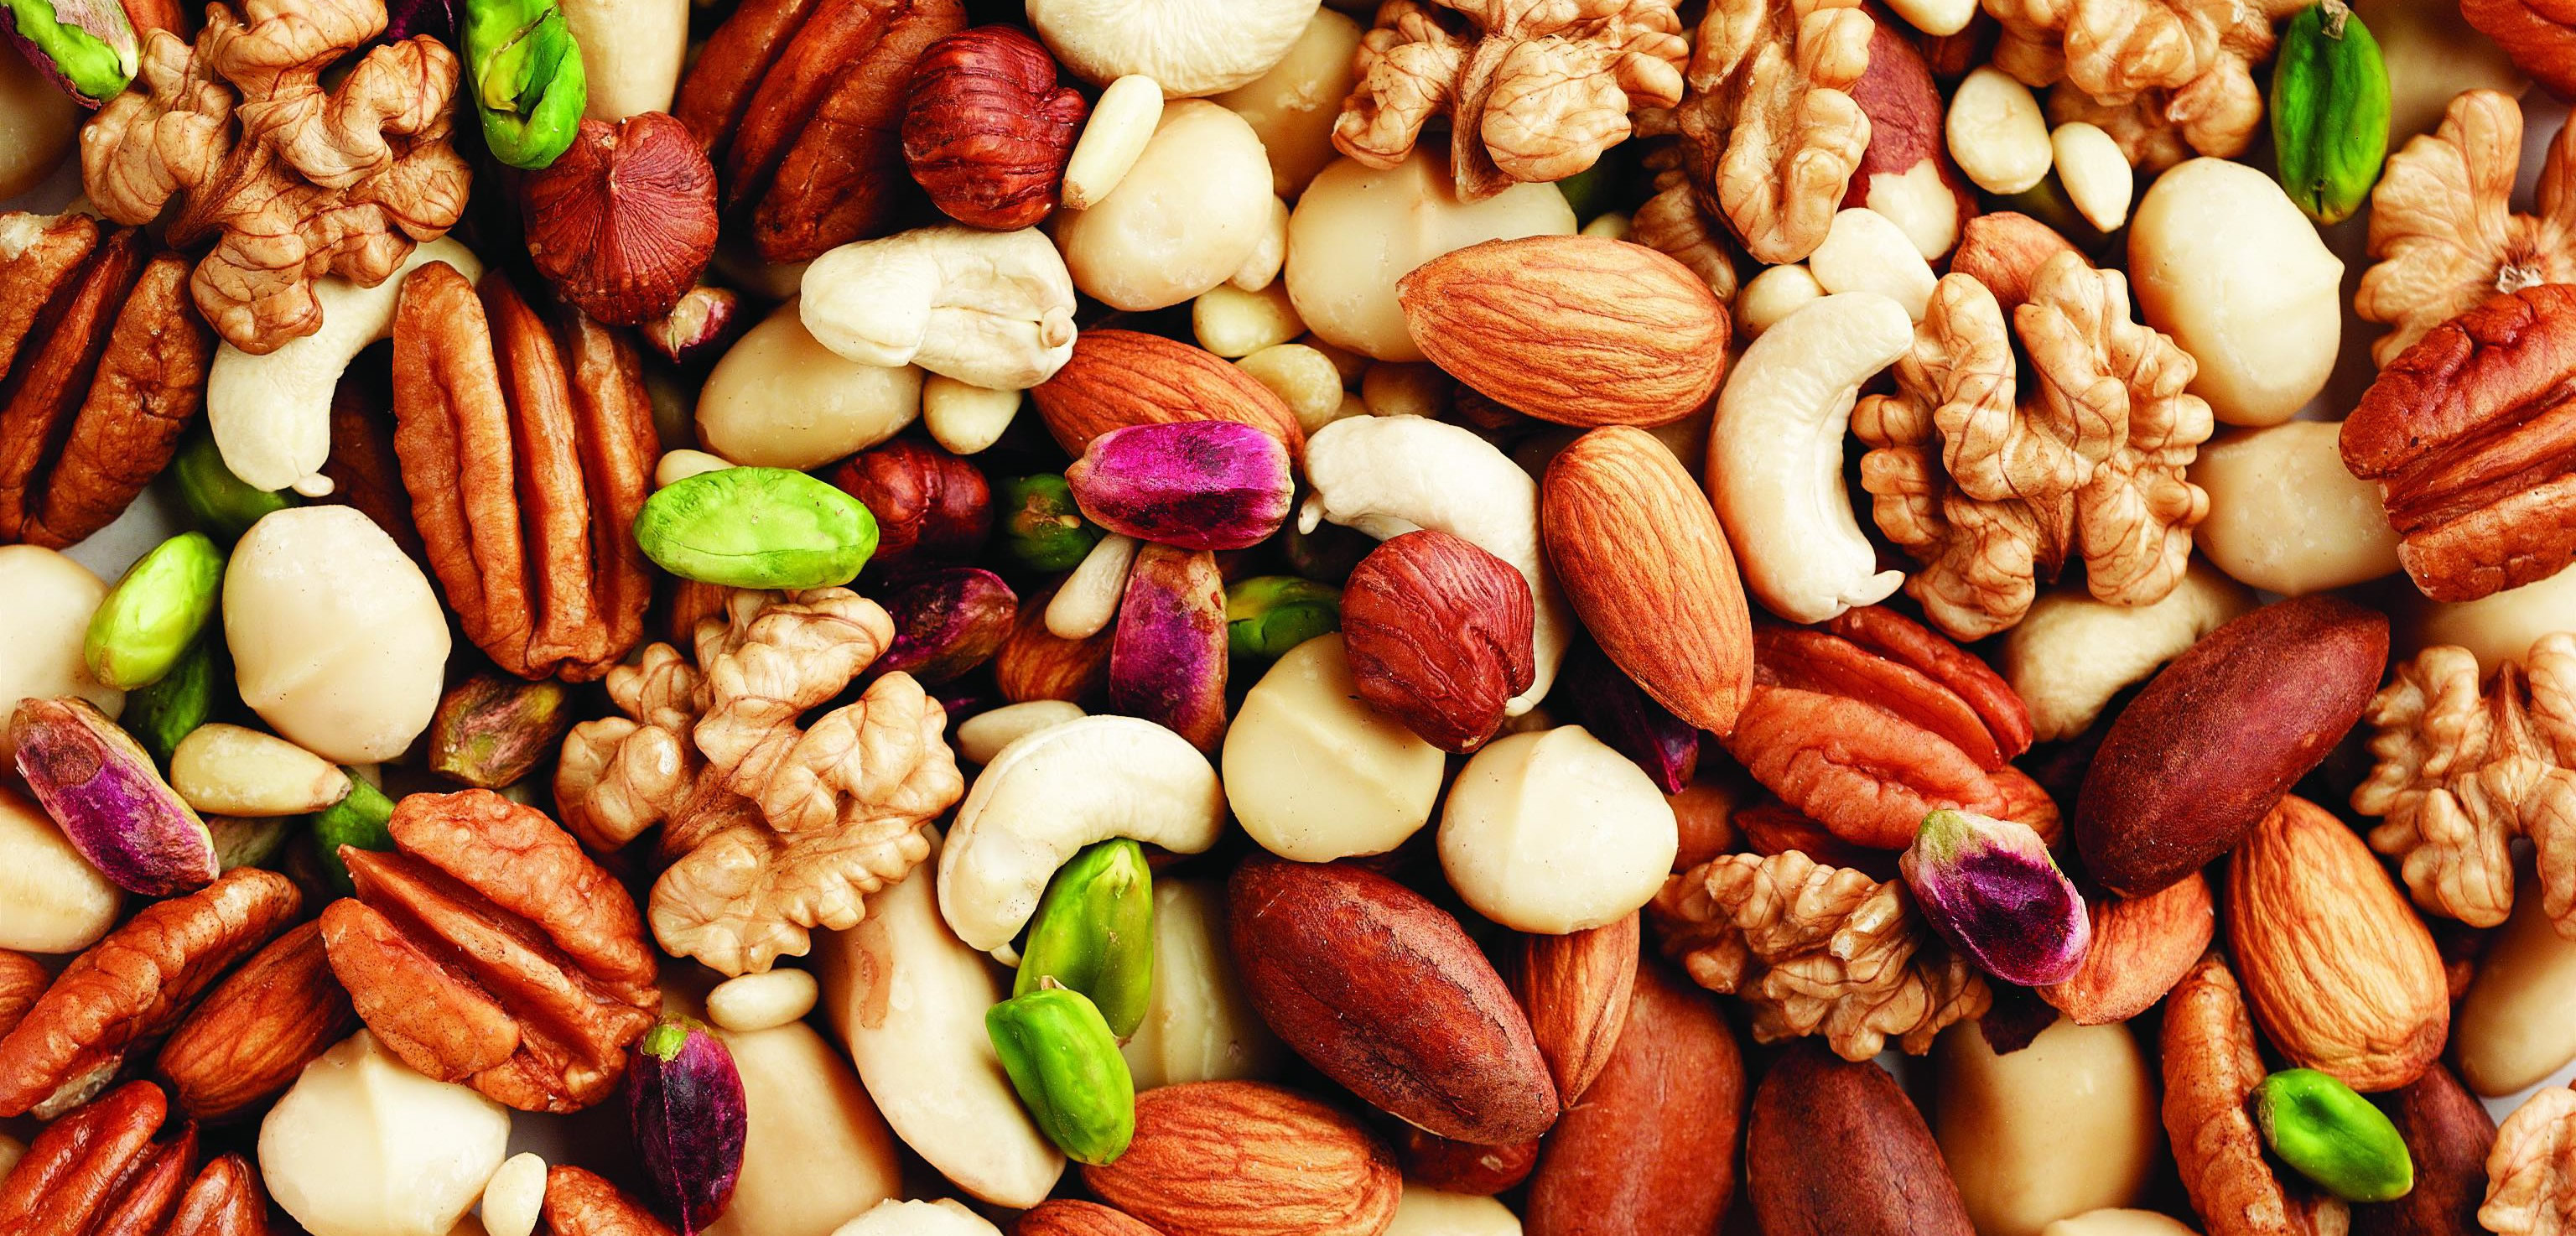 Good Healthy Snacks For Adults Kids Teens And Work For